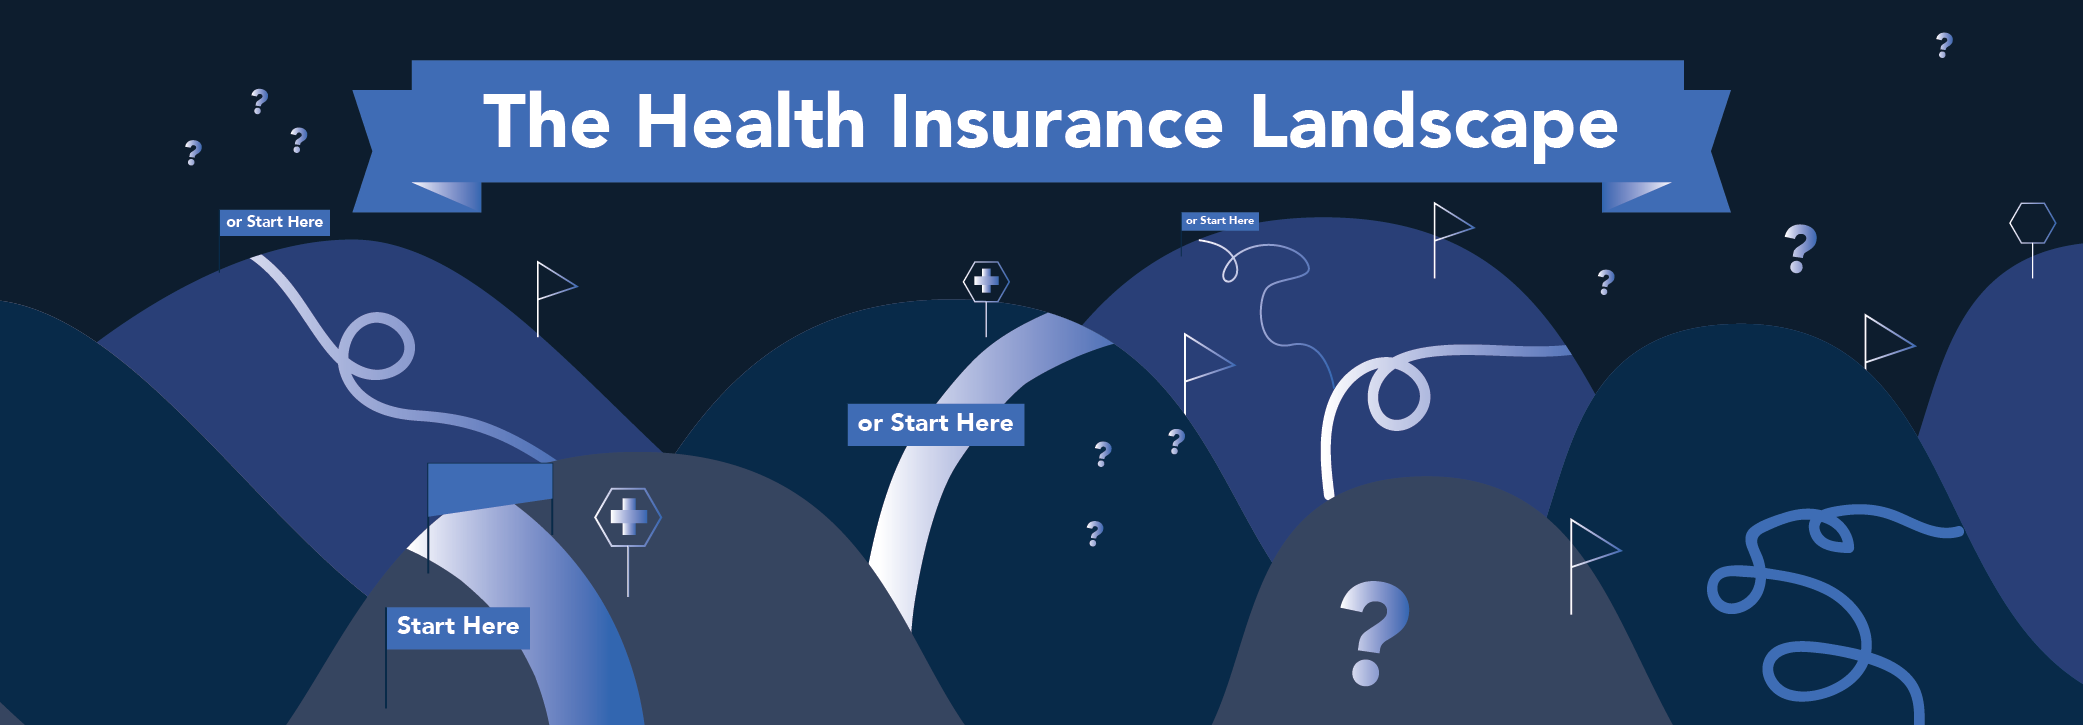 The Health Insurance Landcape